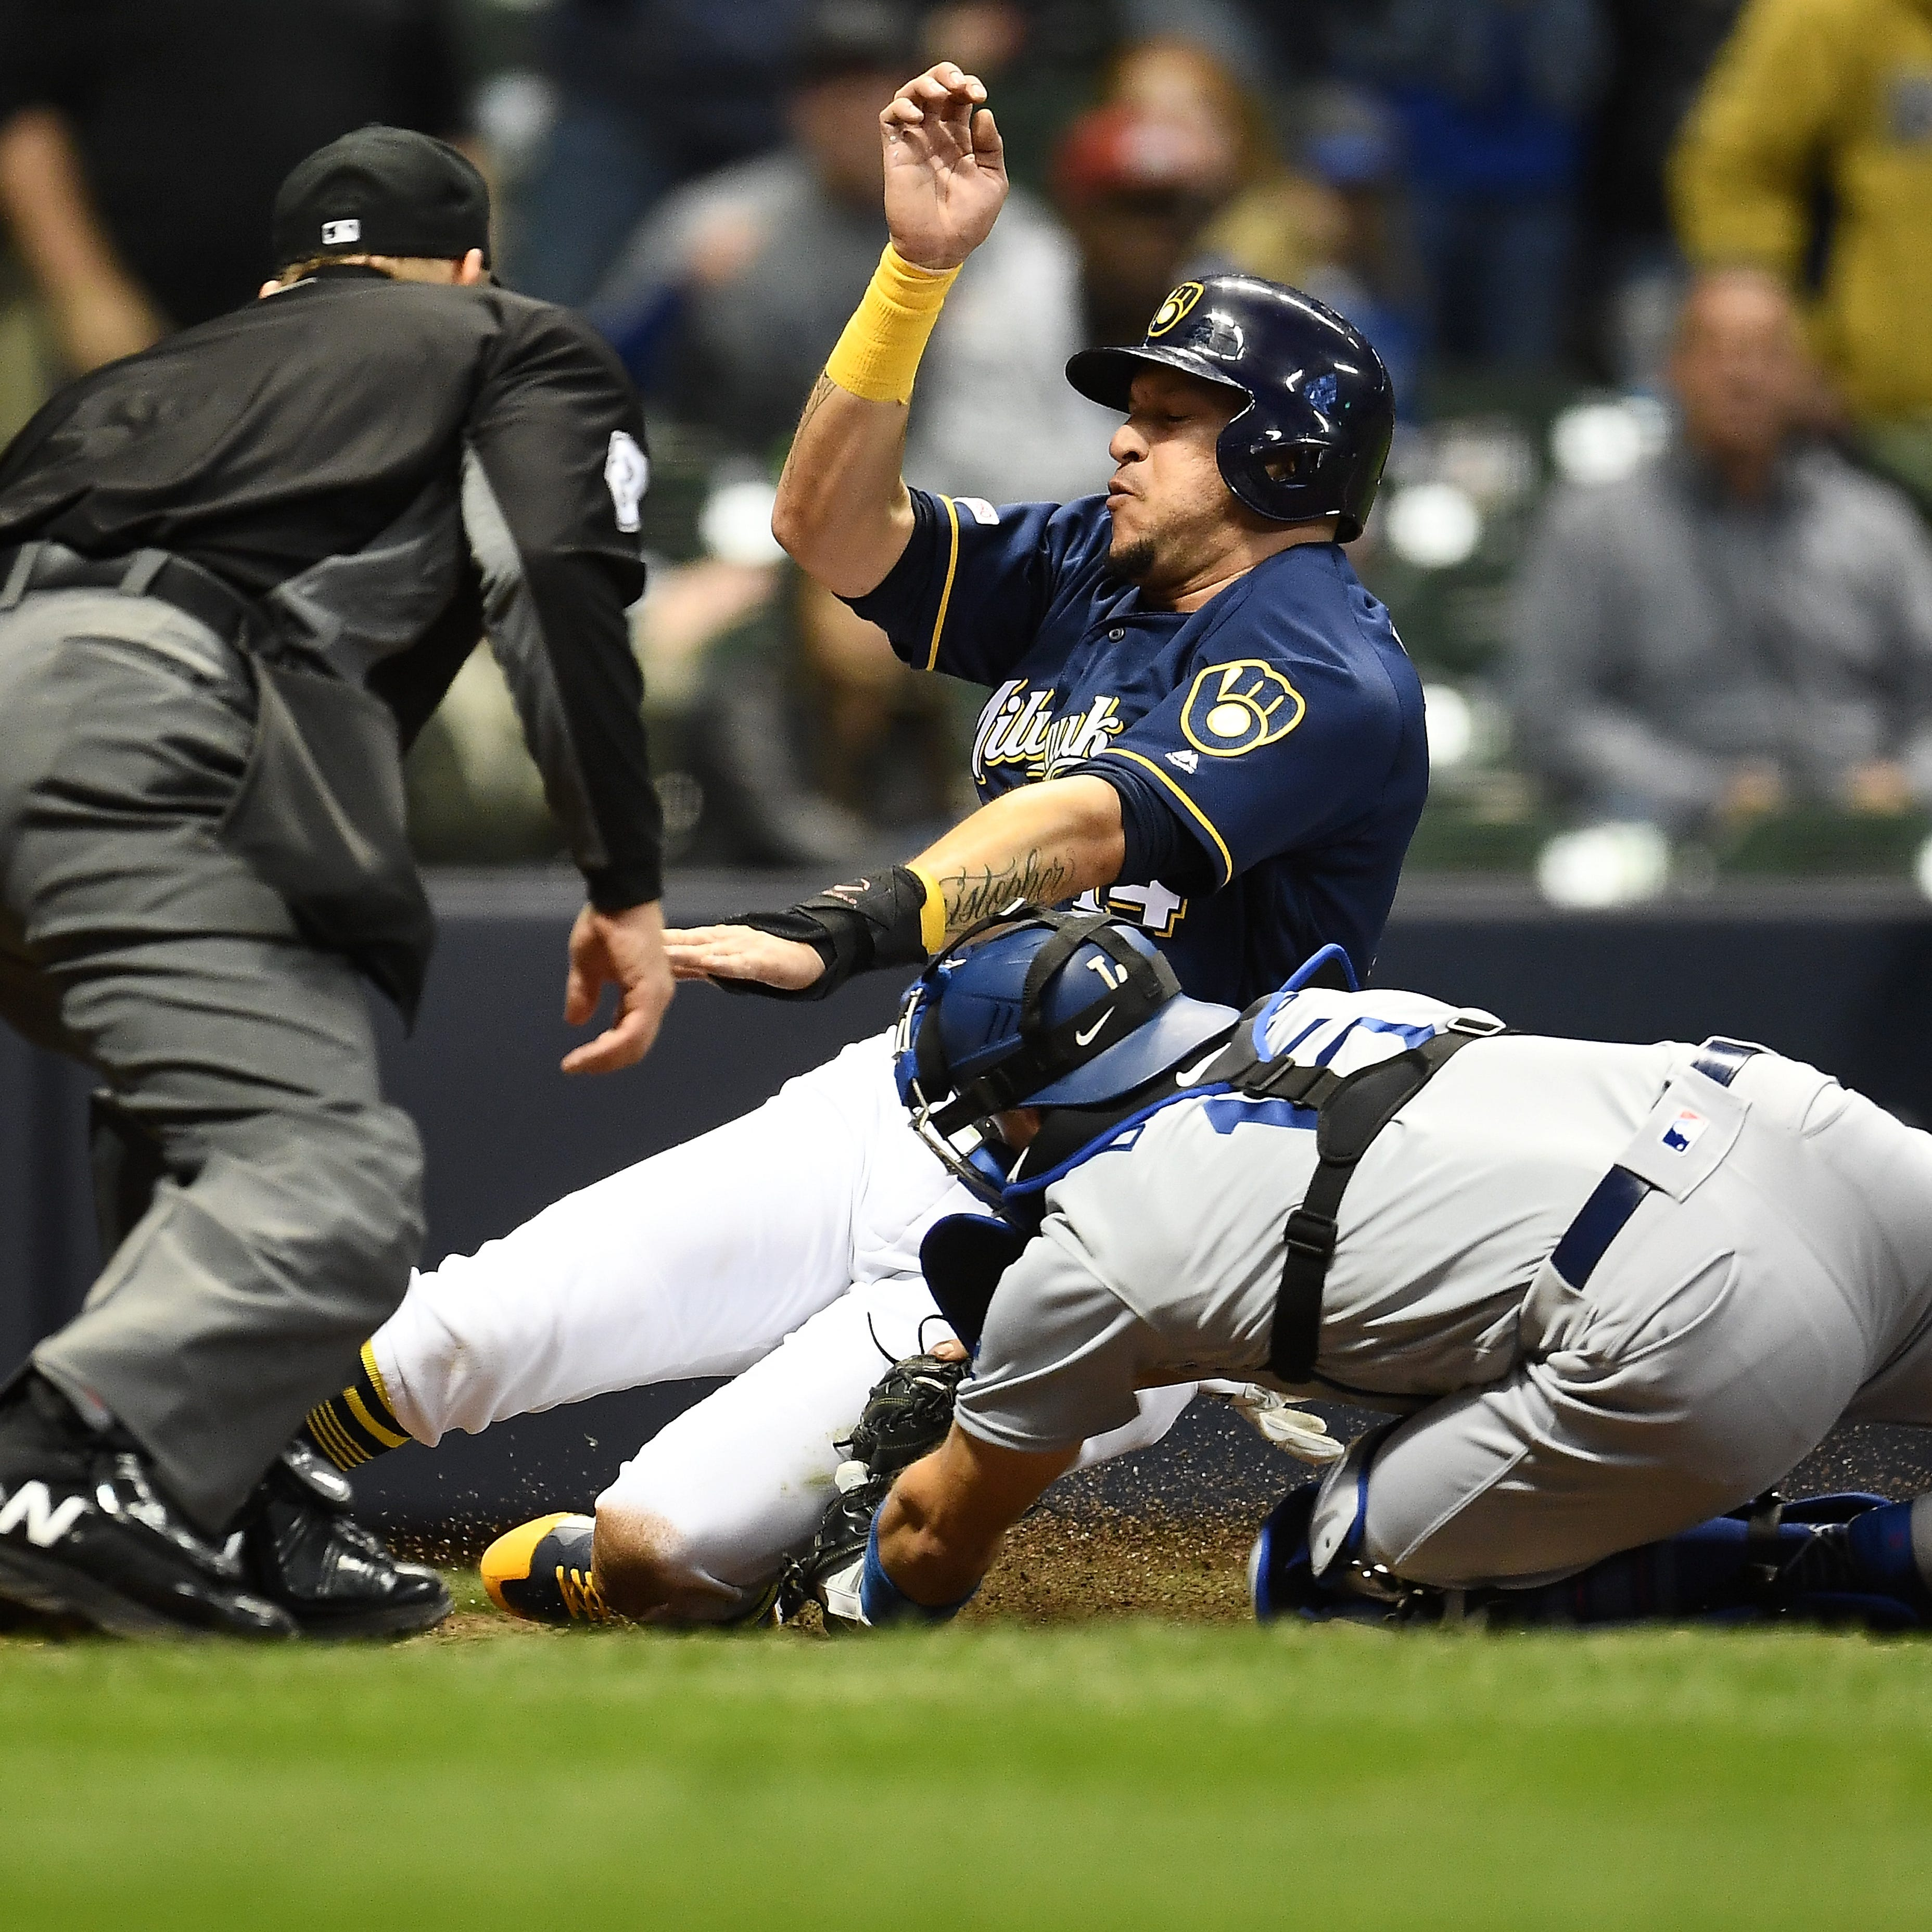 On a night when the offense struggled, Brewers needed to get Christian Yelich to plate in 8th